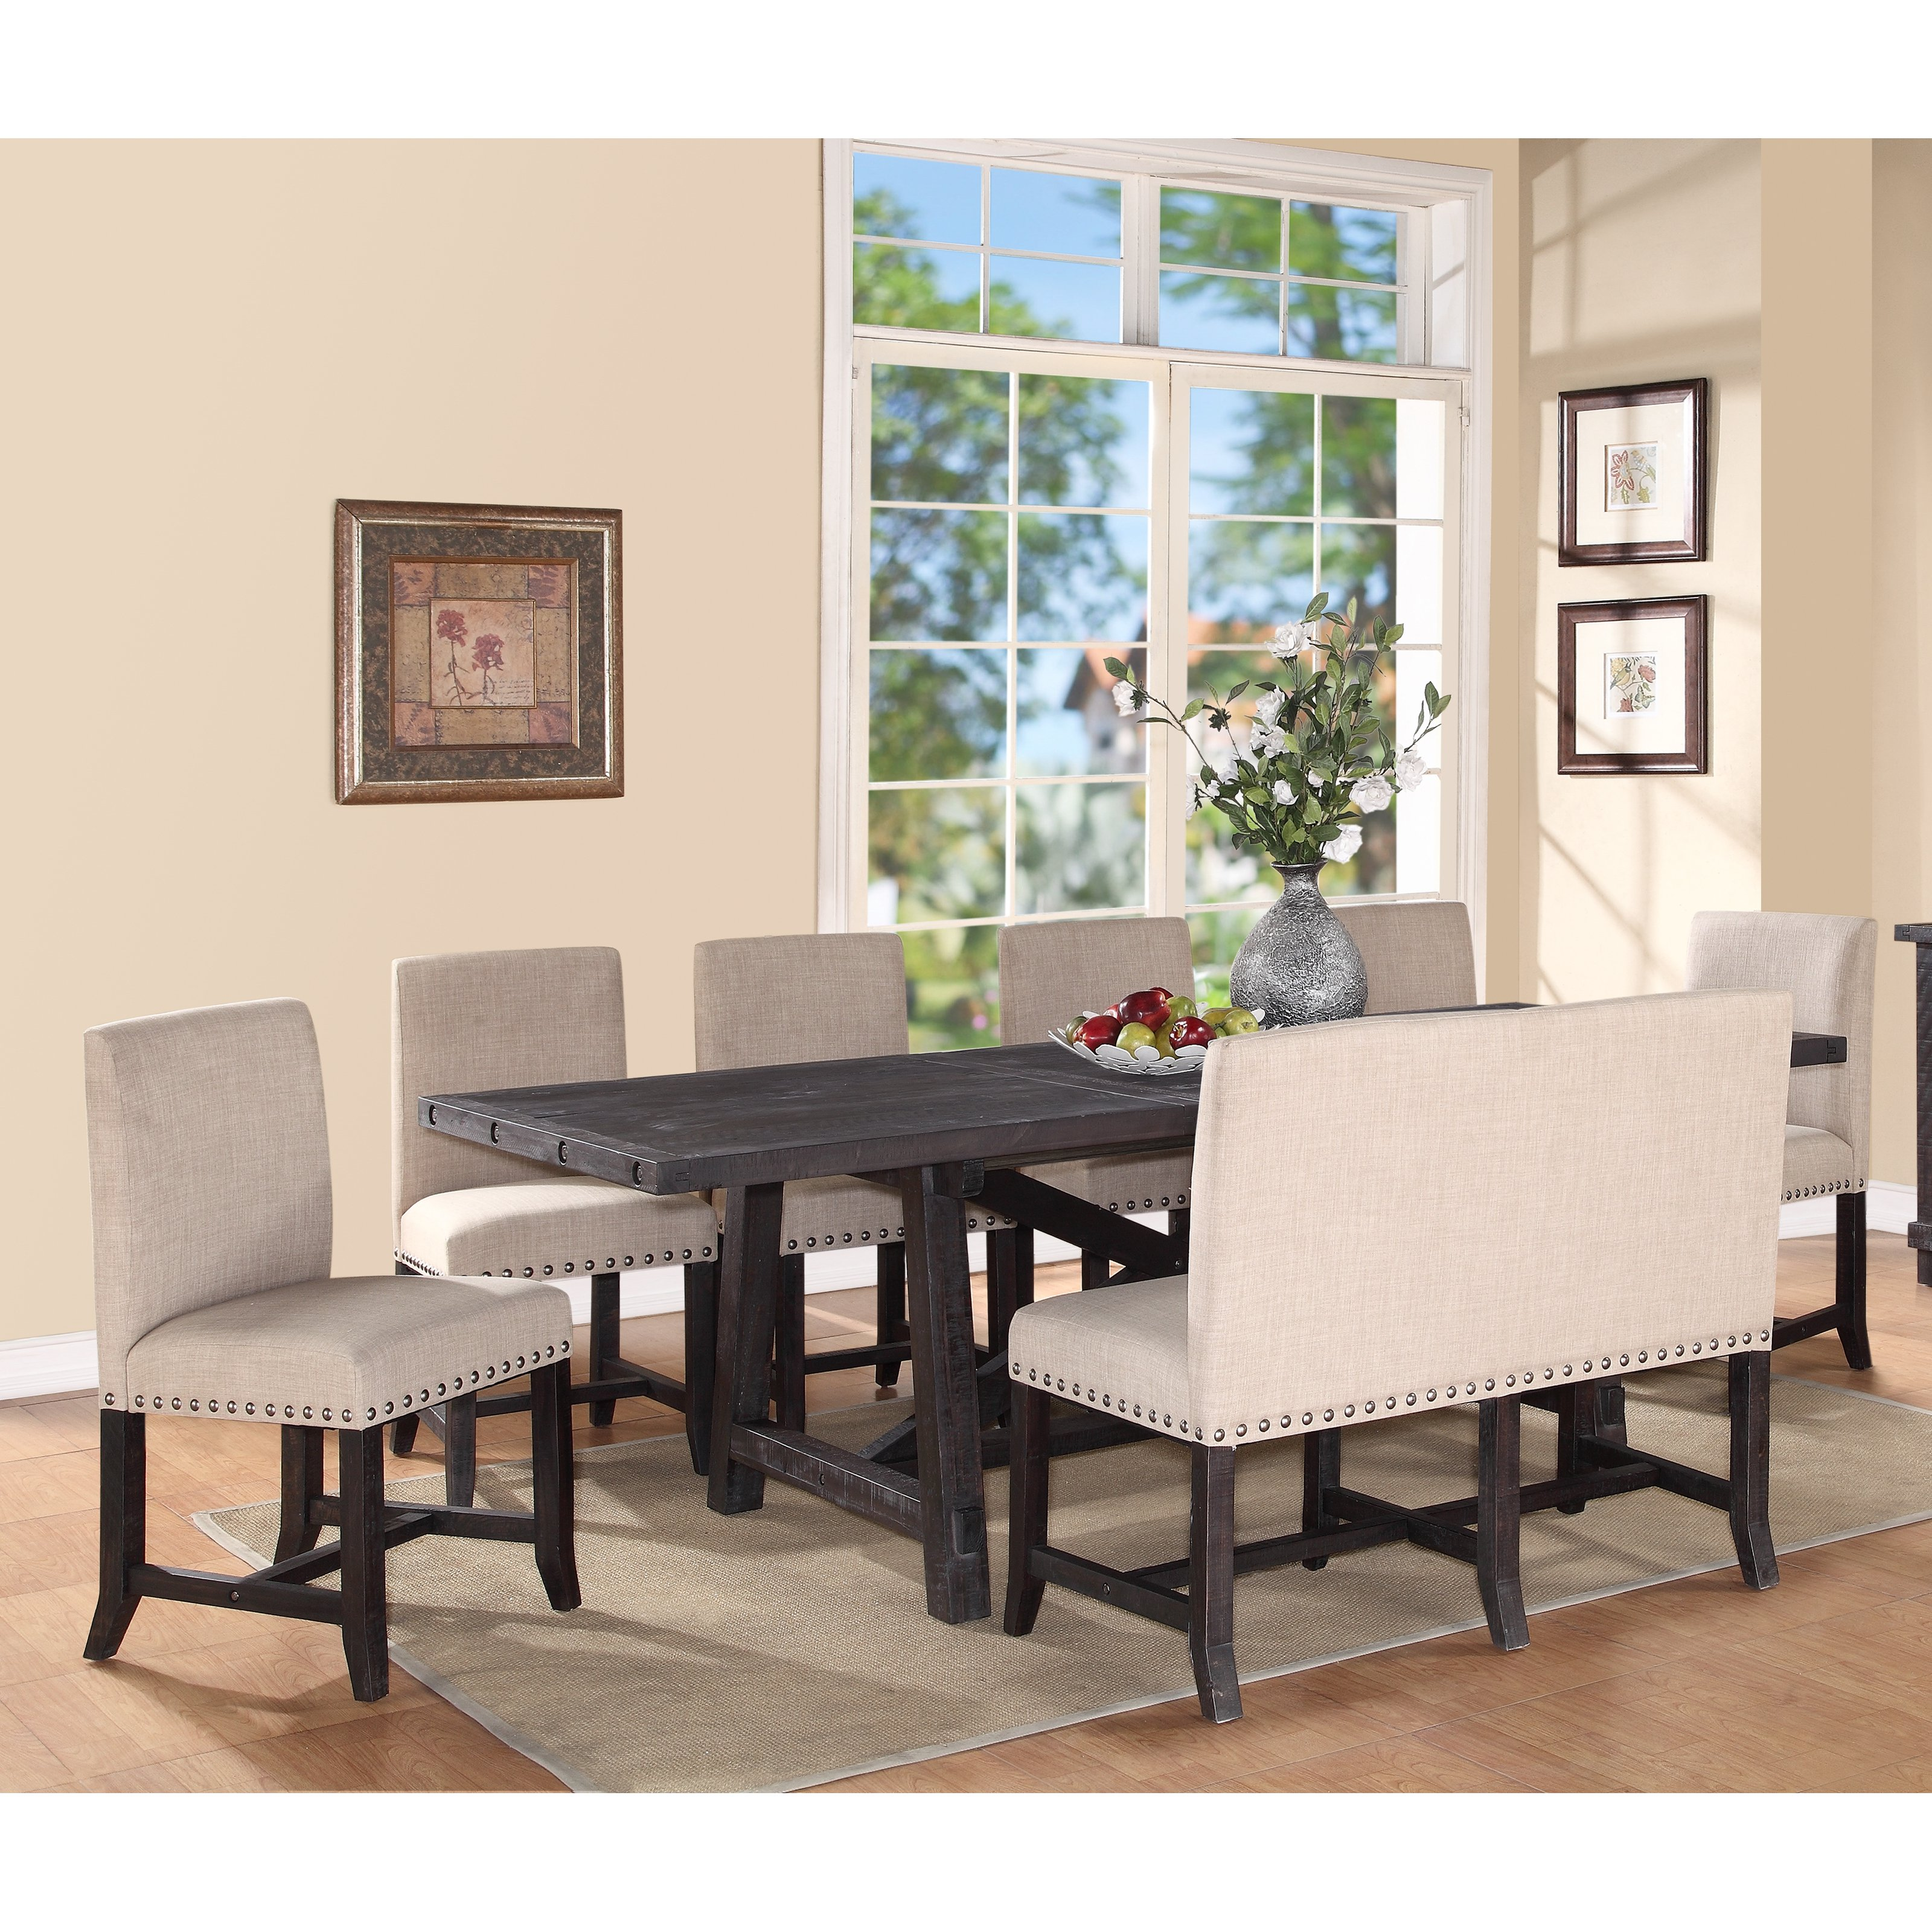 Gentil Modus Yosemite 8 Piece Rectangular Dining Table Set With Upholstered Chairs  And Settee   Walmart.com